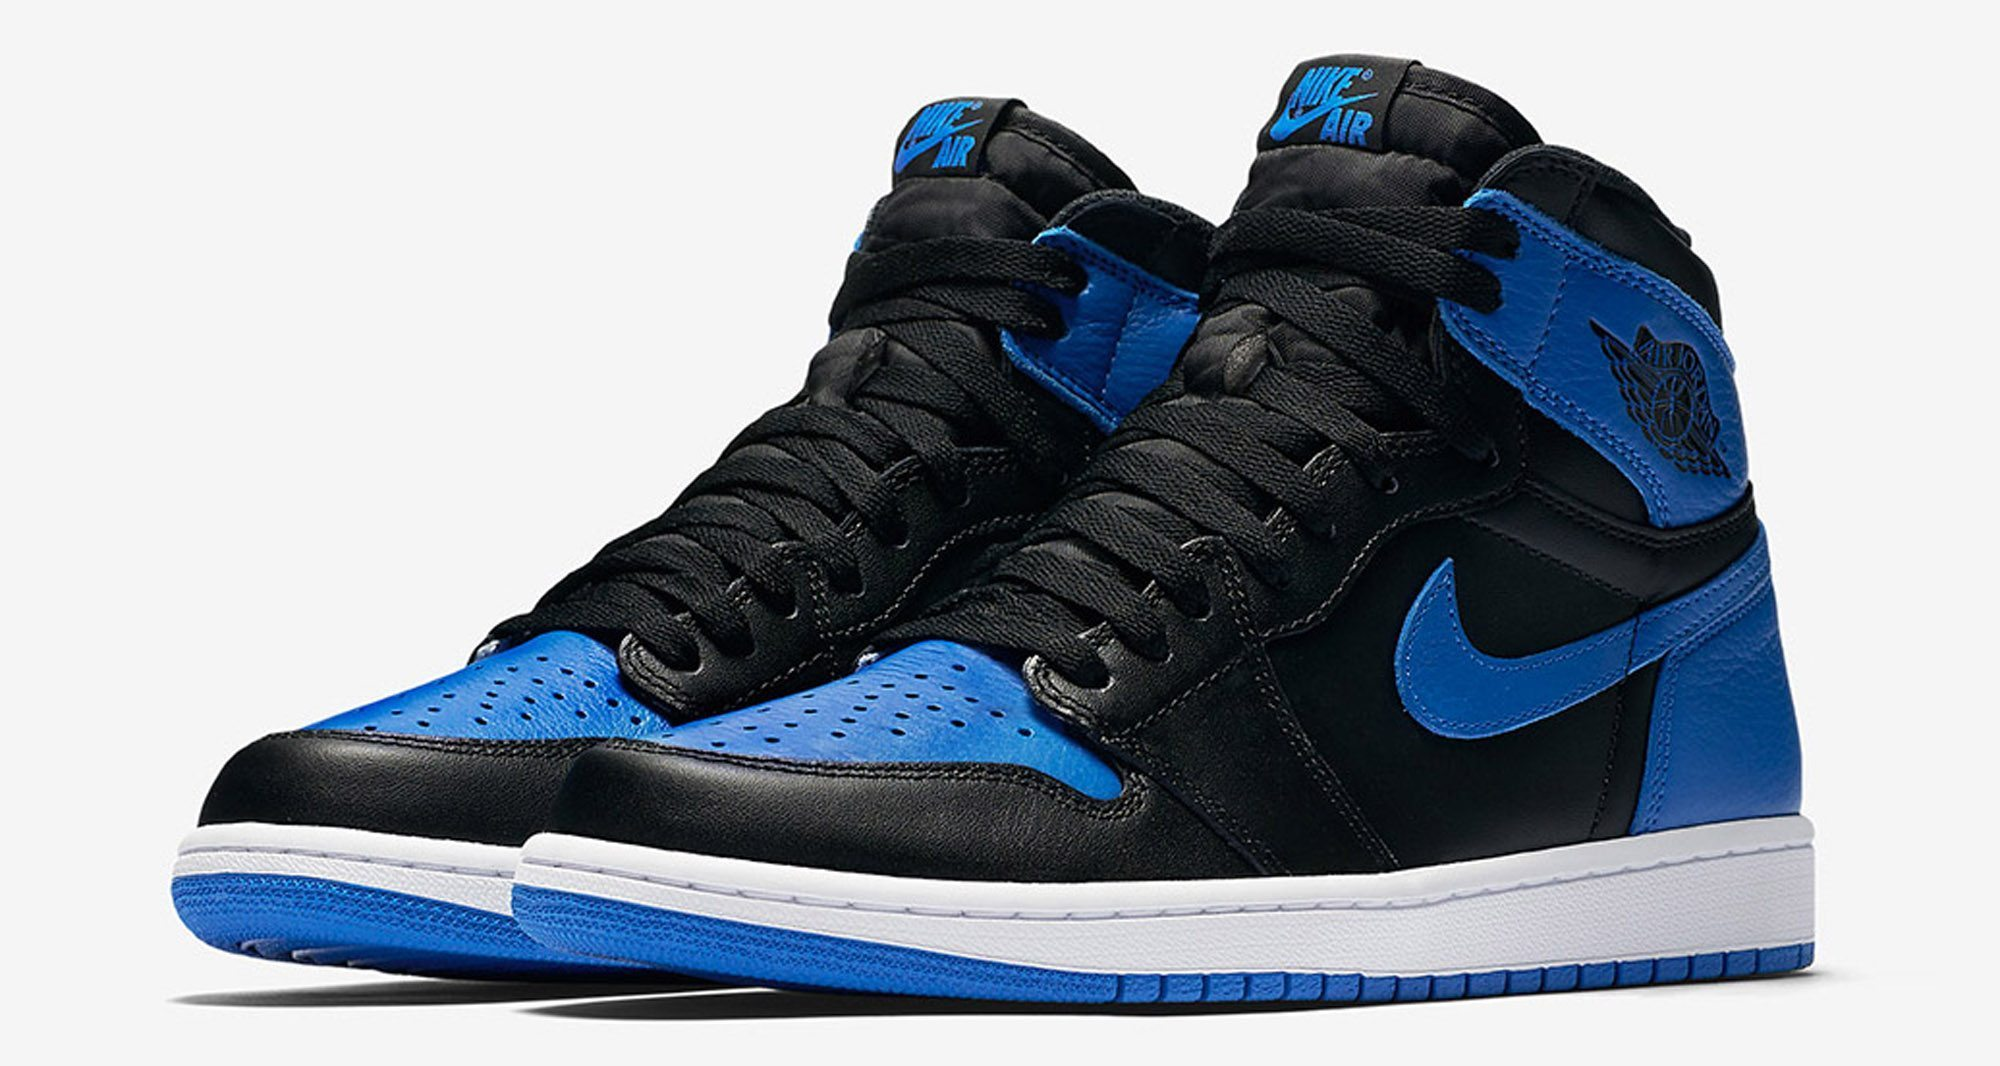 air jordan 1 royal nicekicks